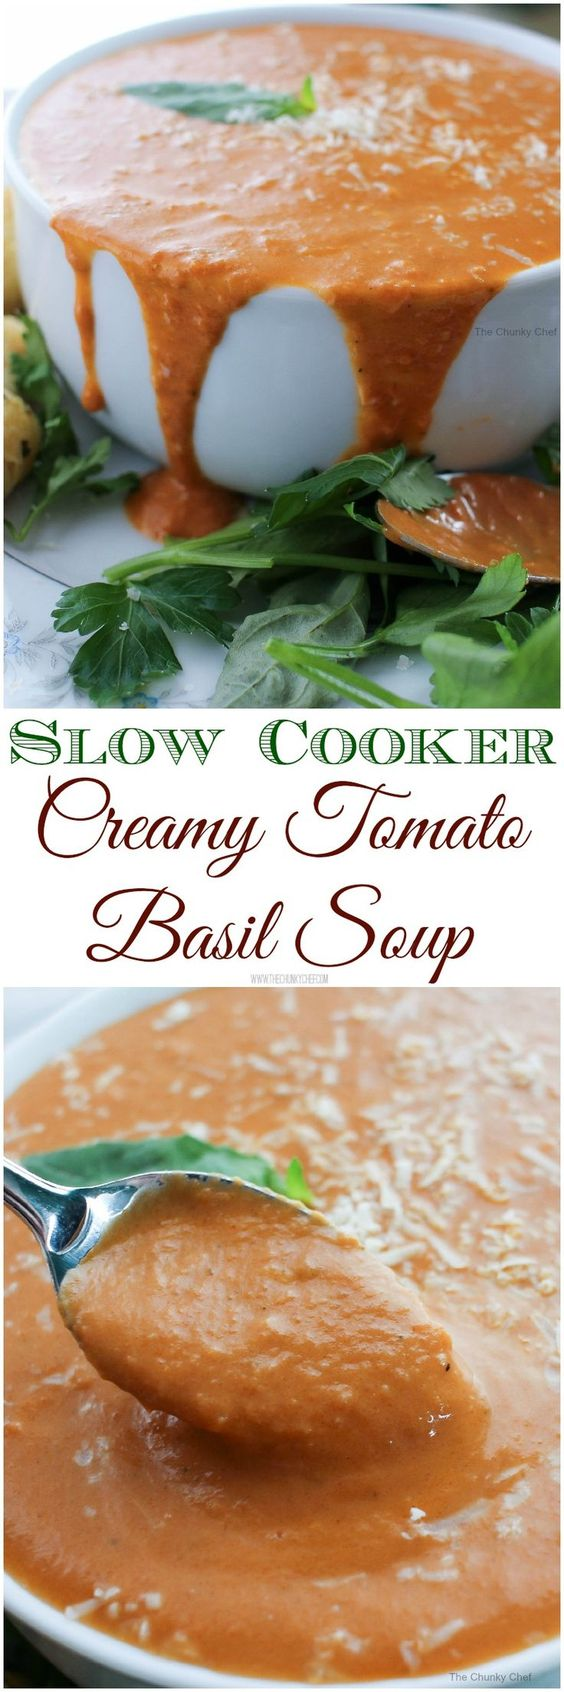 Slow Cooker Creamy Tomato and Basil Soup | Recipe | Creamy ...